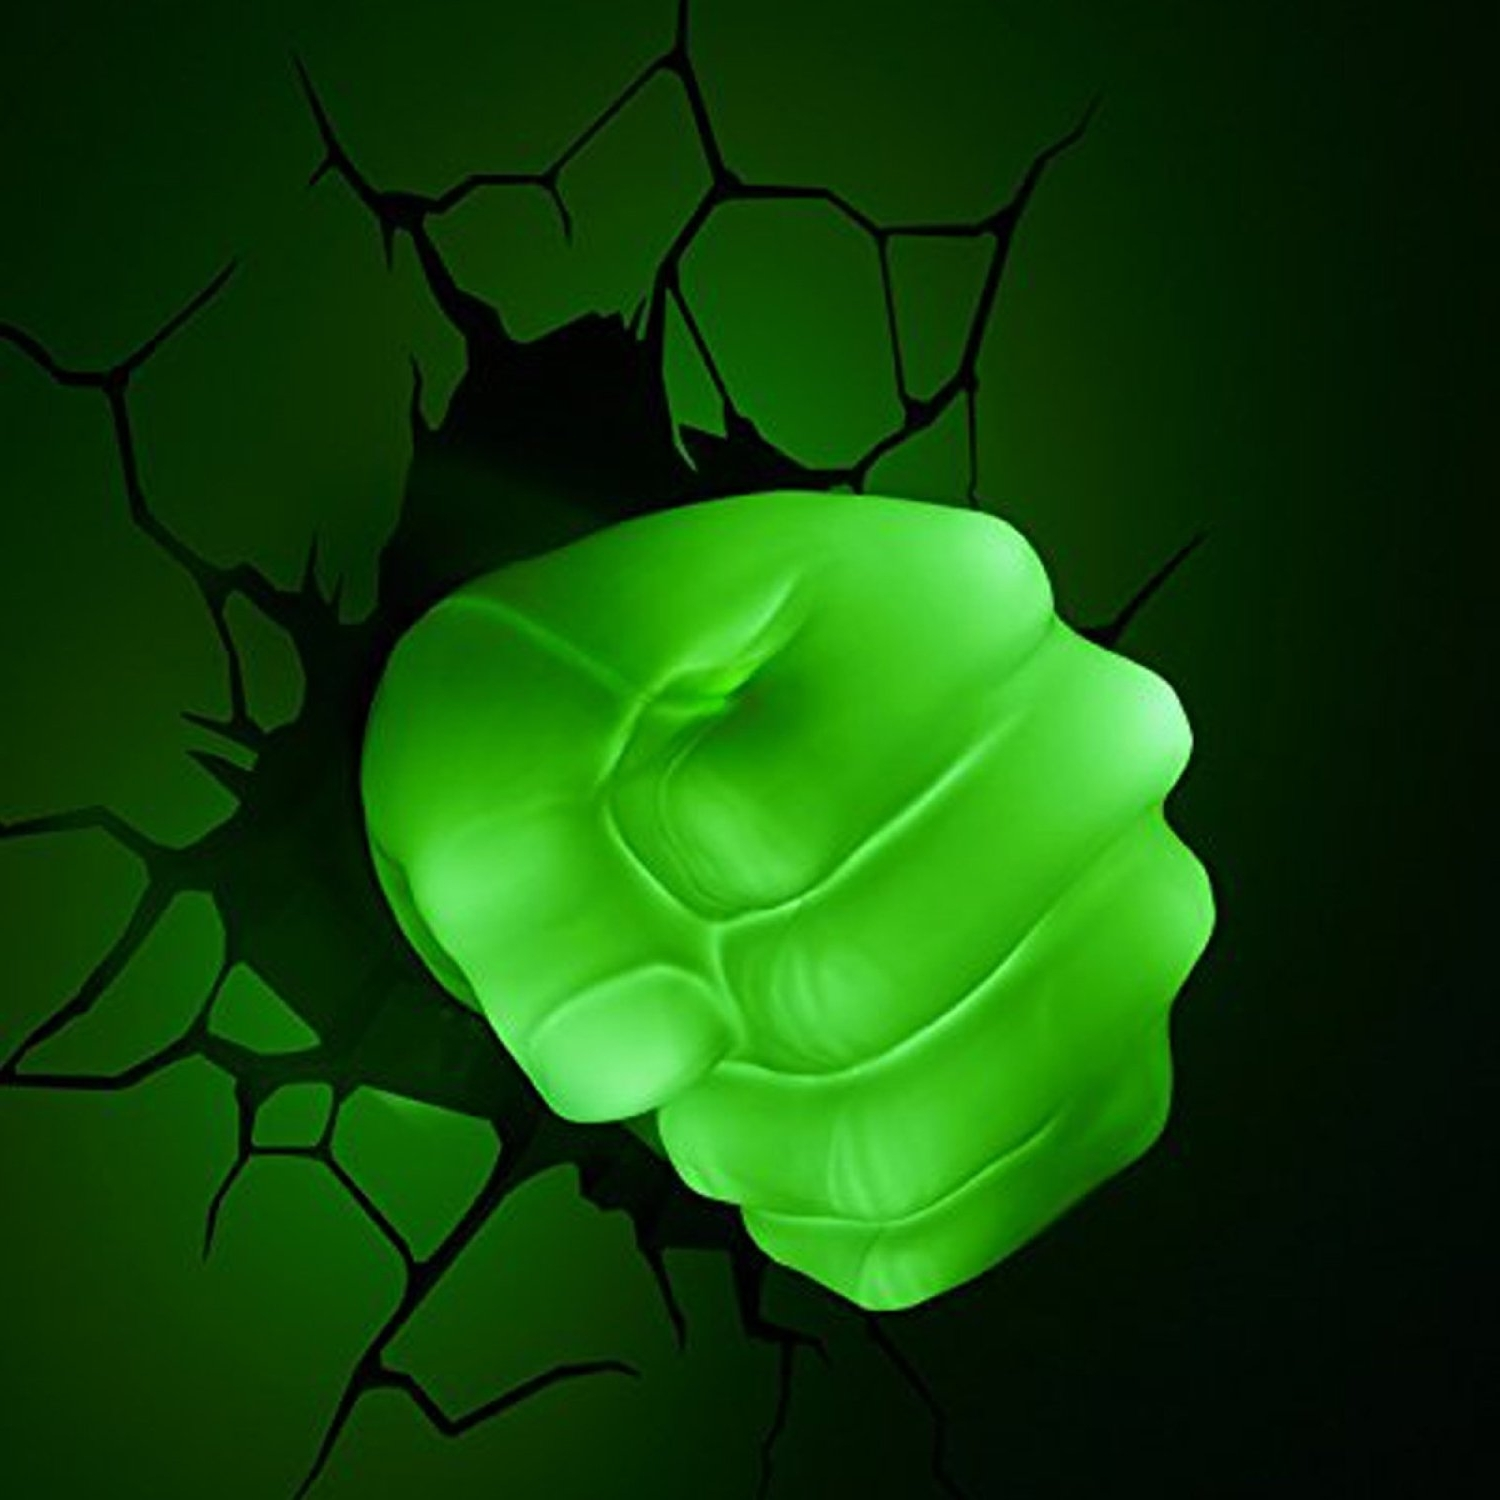 3D Wall Art Nightlight Throughout Fashionable The Avengers 3D Wall Art Nightlight – Hulk Hand (View 1 of 15)